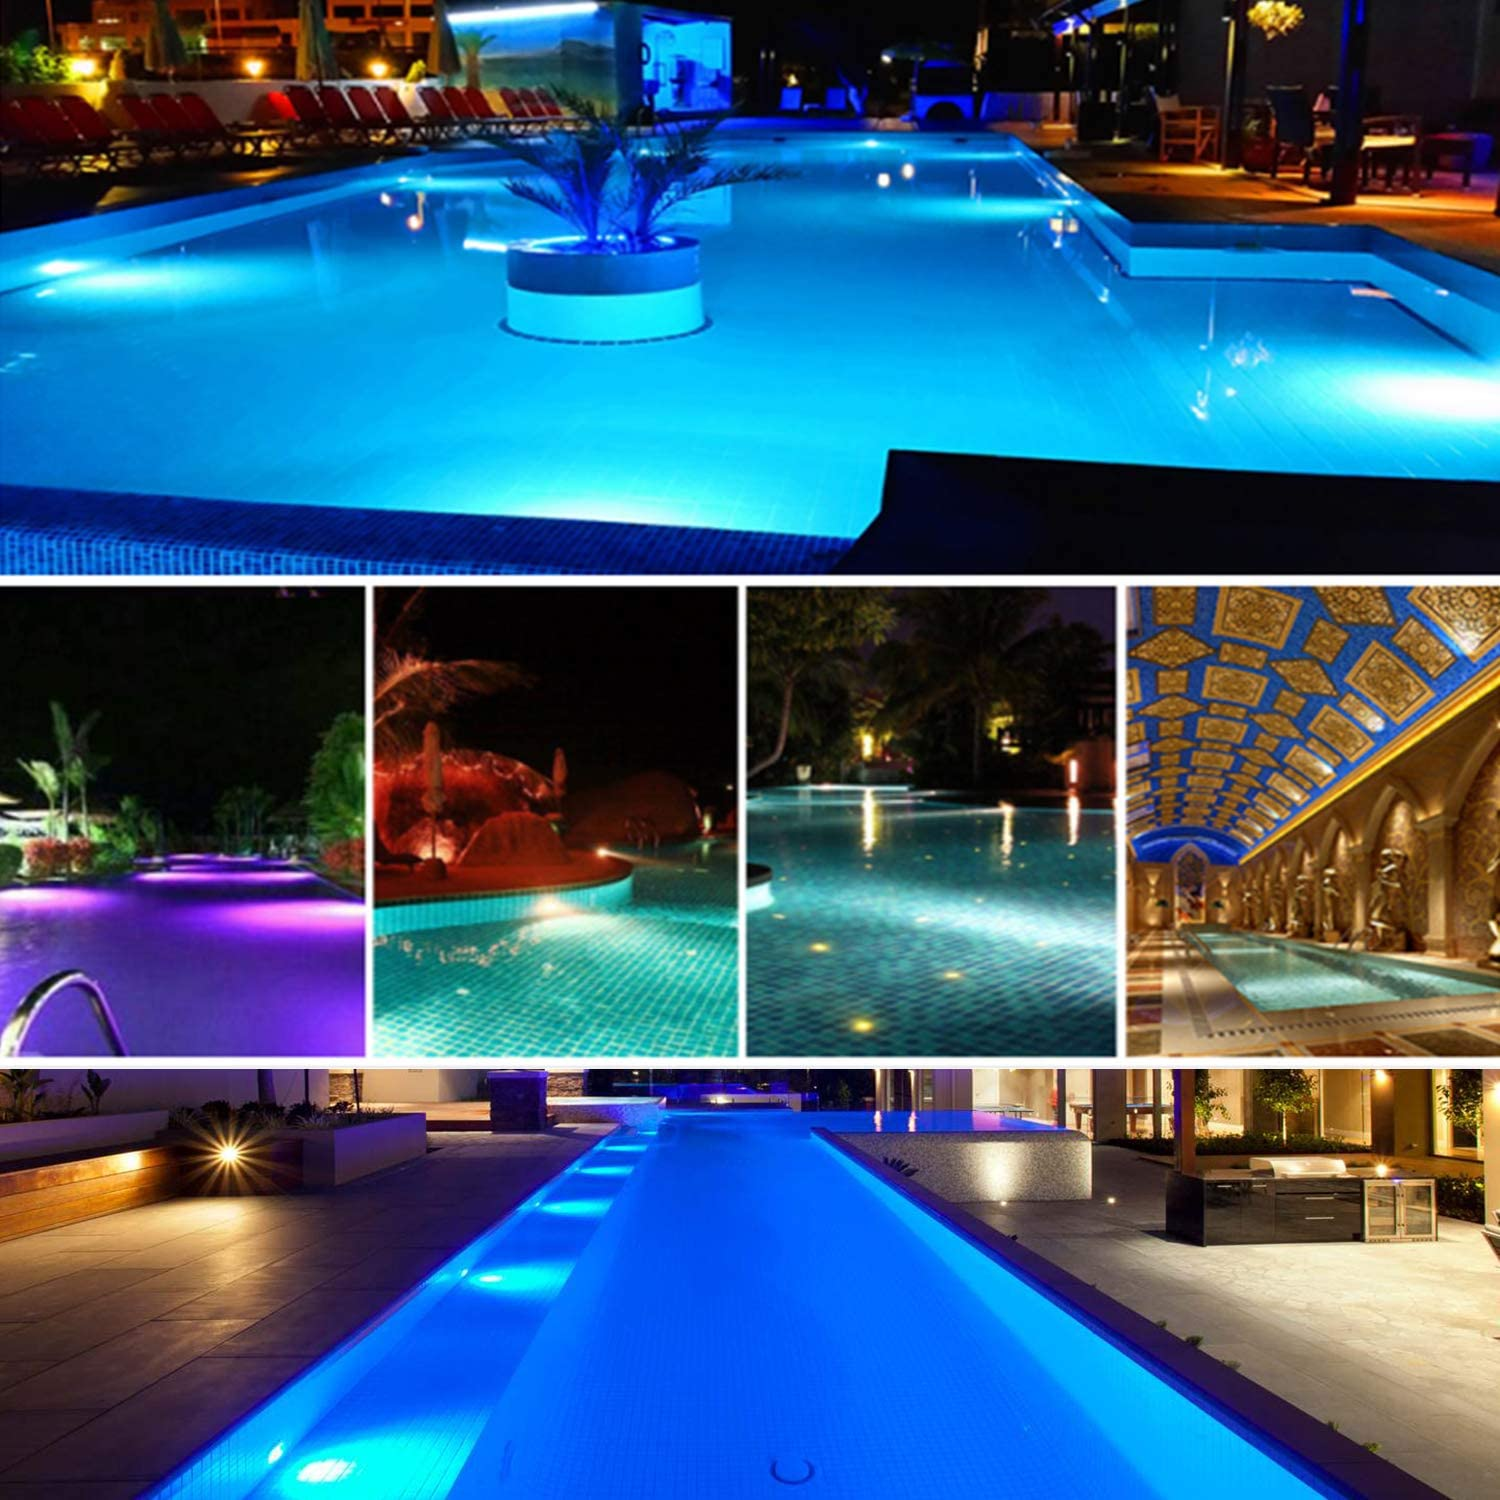 Roleadro Luz Led Para Piscina Impermeable Ip68 47 W Rgb Luces De Piscina Multicolor No Incluye Blanca 12 V Ac Dc Led Inground Pool Control De Luz Con Mando A Distancia